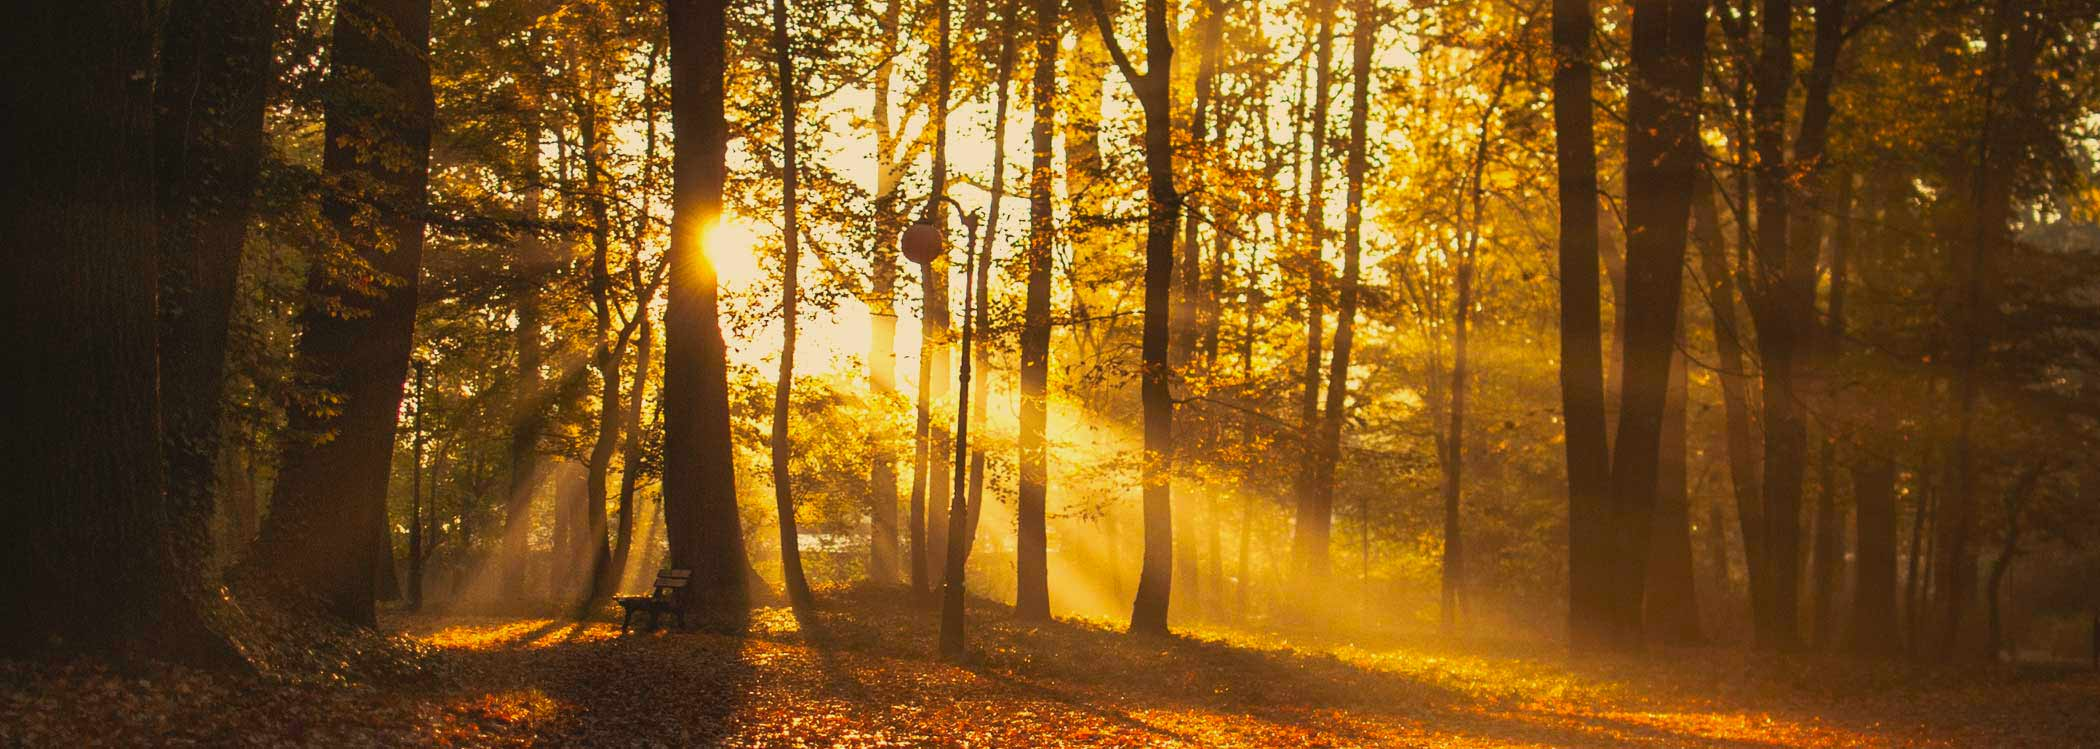 dare to shine forest trees visiblity